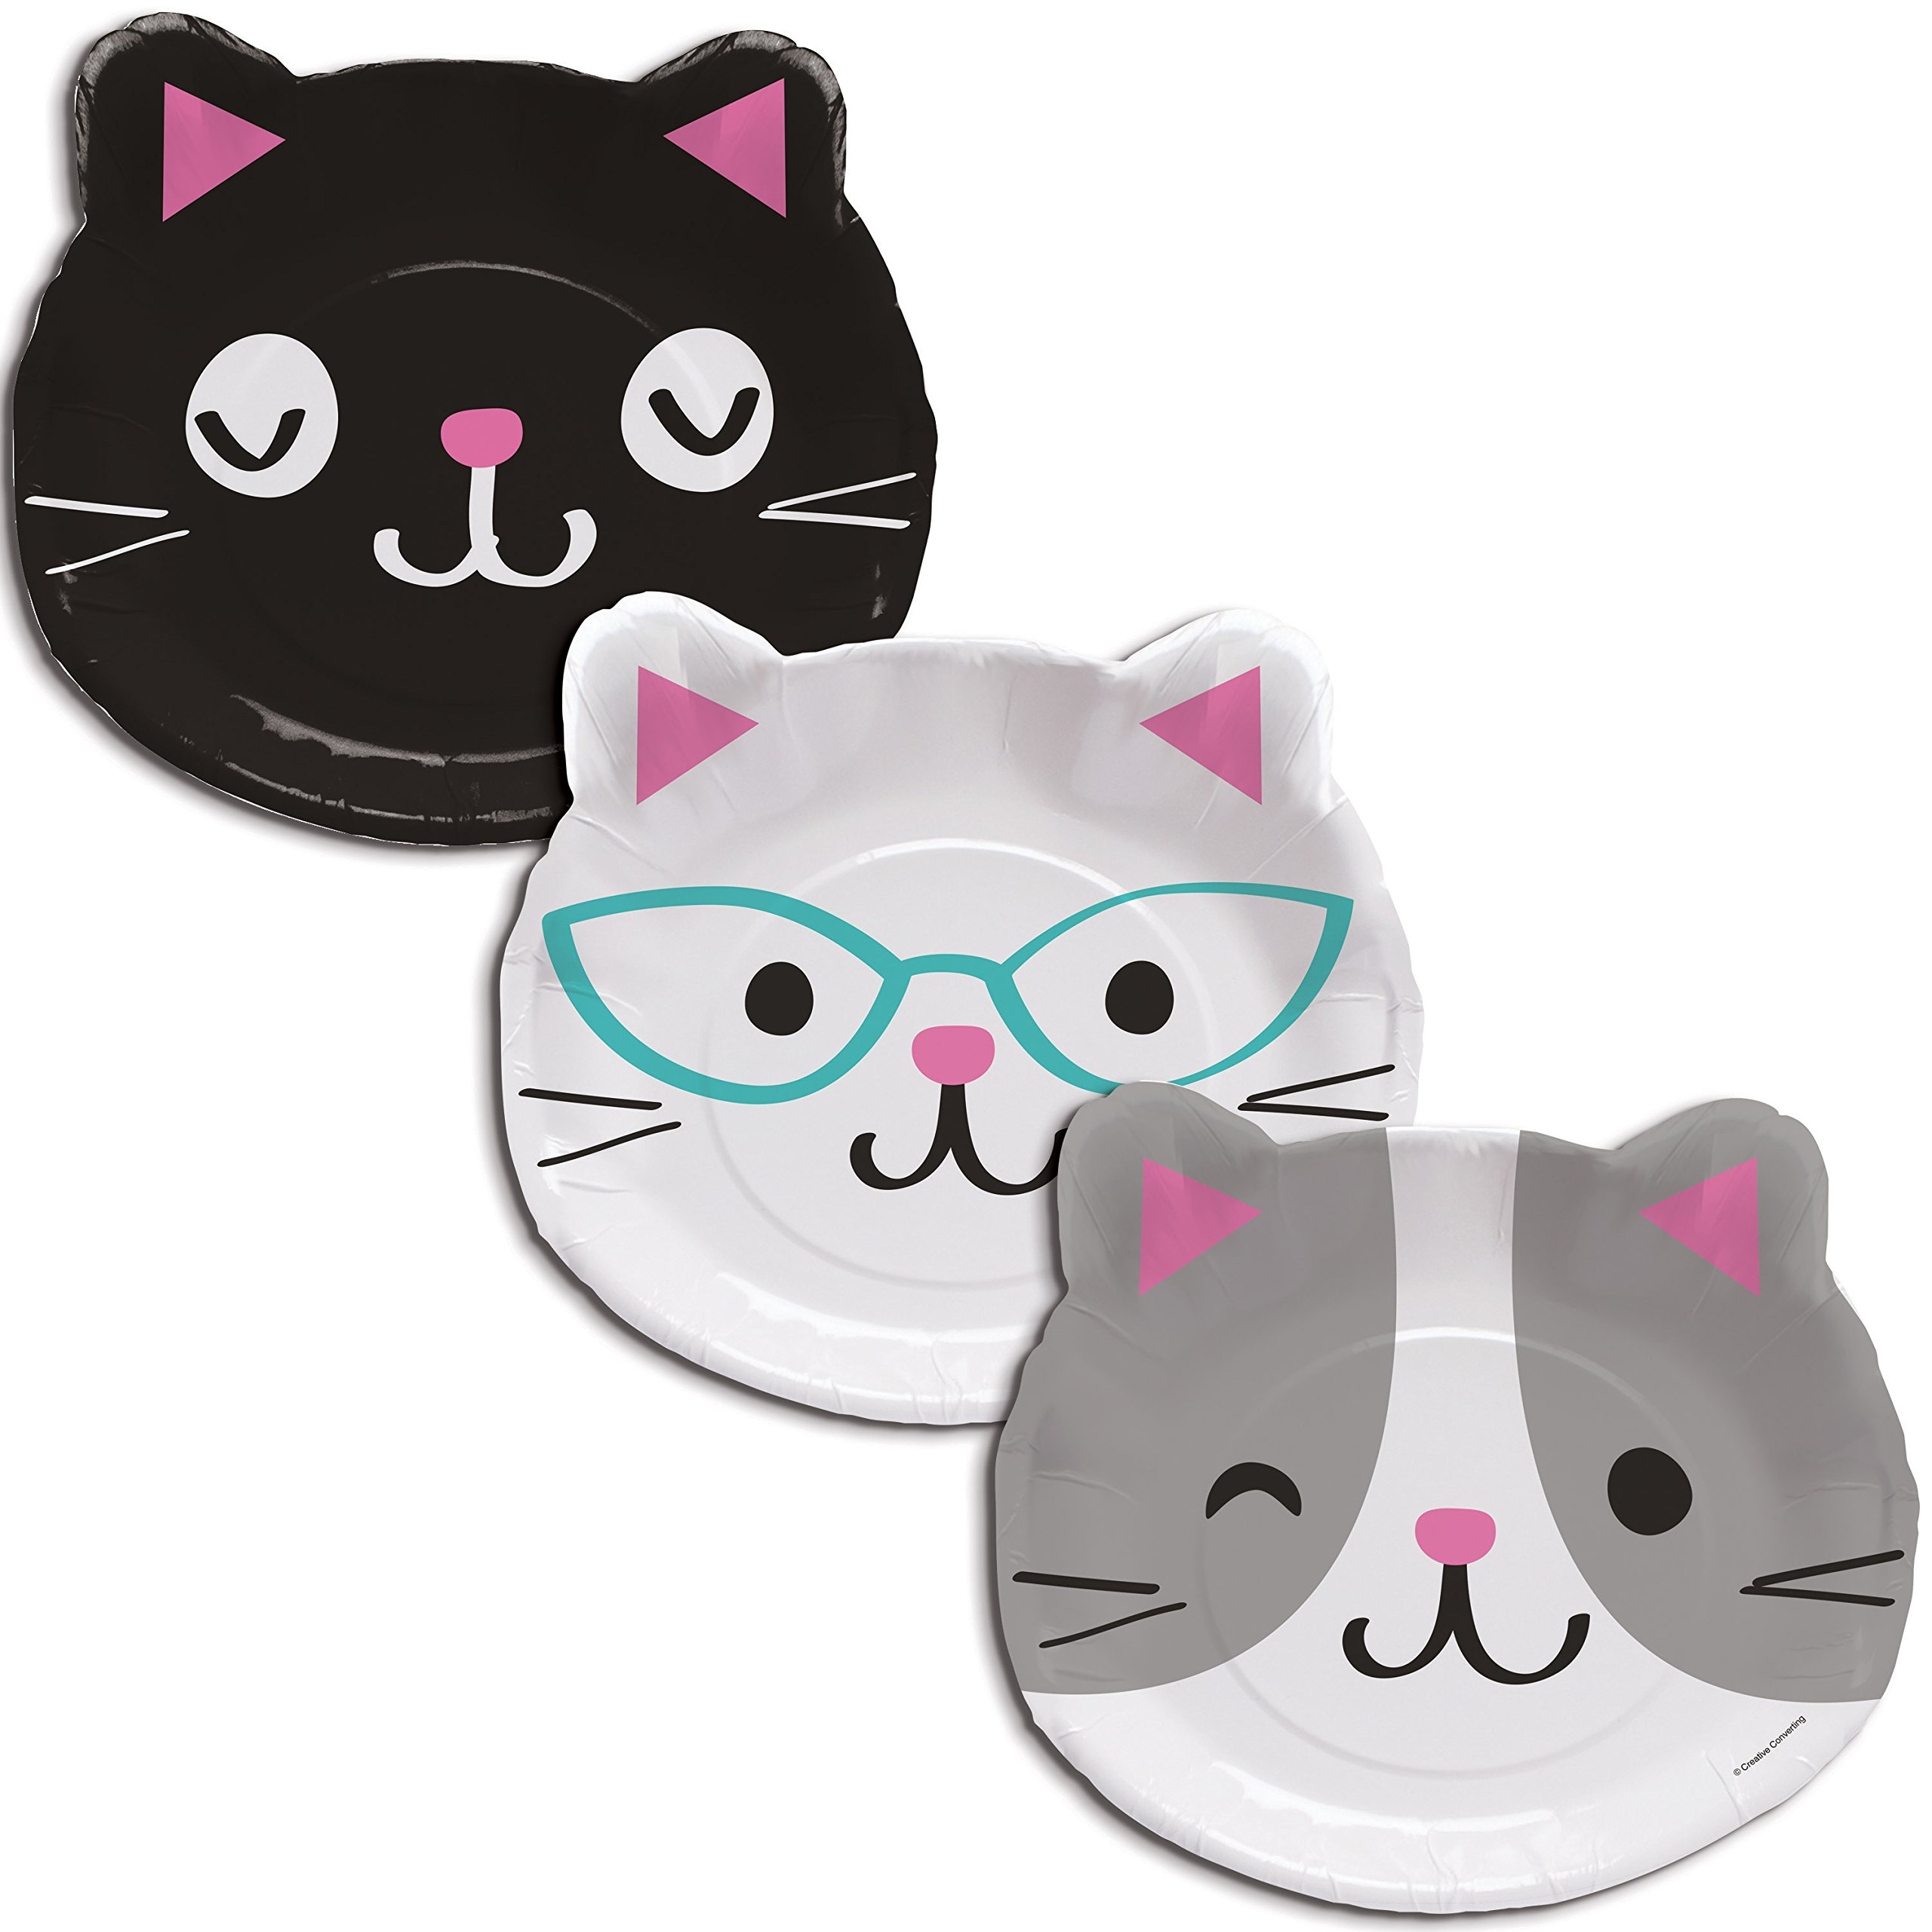 Cat Party Assorted Kitten Shaped Plates, 24 ct by Creative Converting